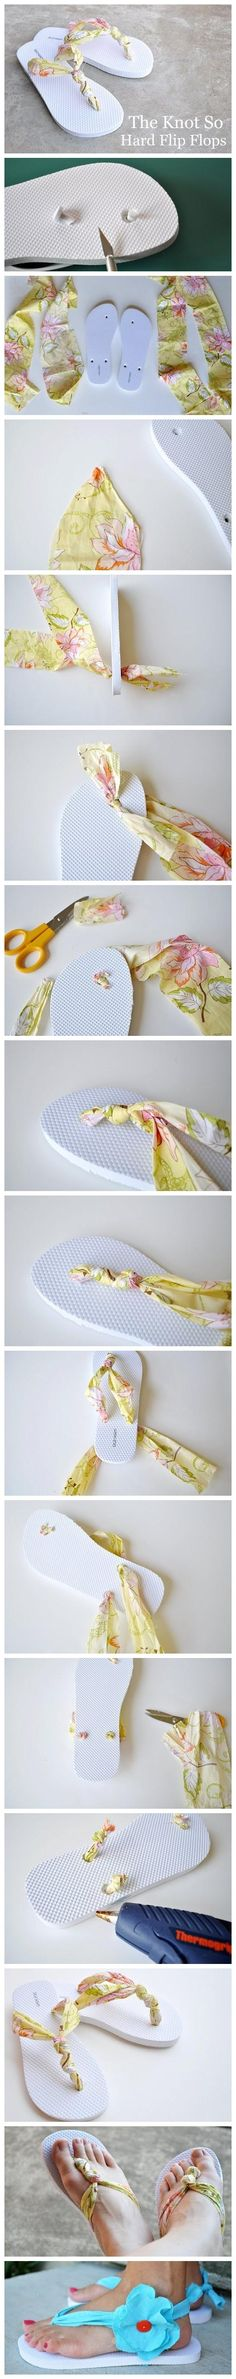 Think I'll do this to my cheapy Old Navy flip-flops to make them more comfortable...